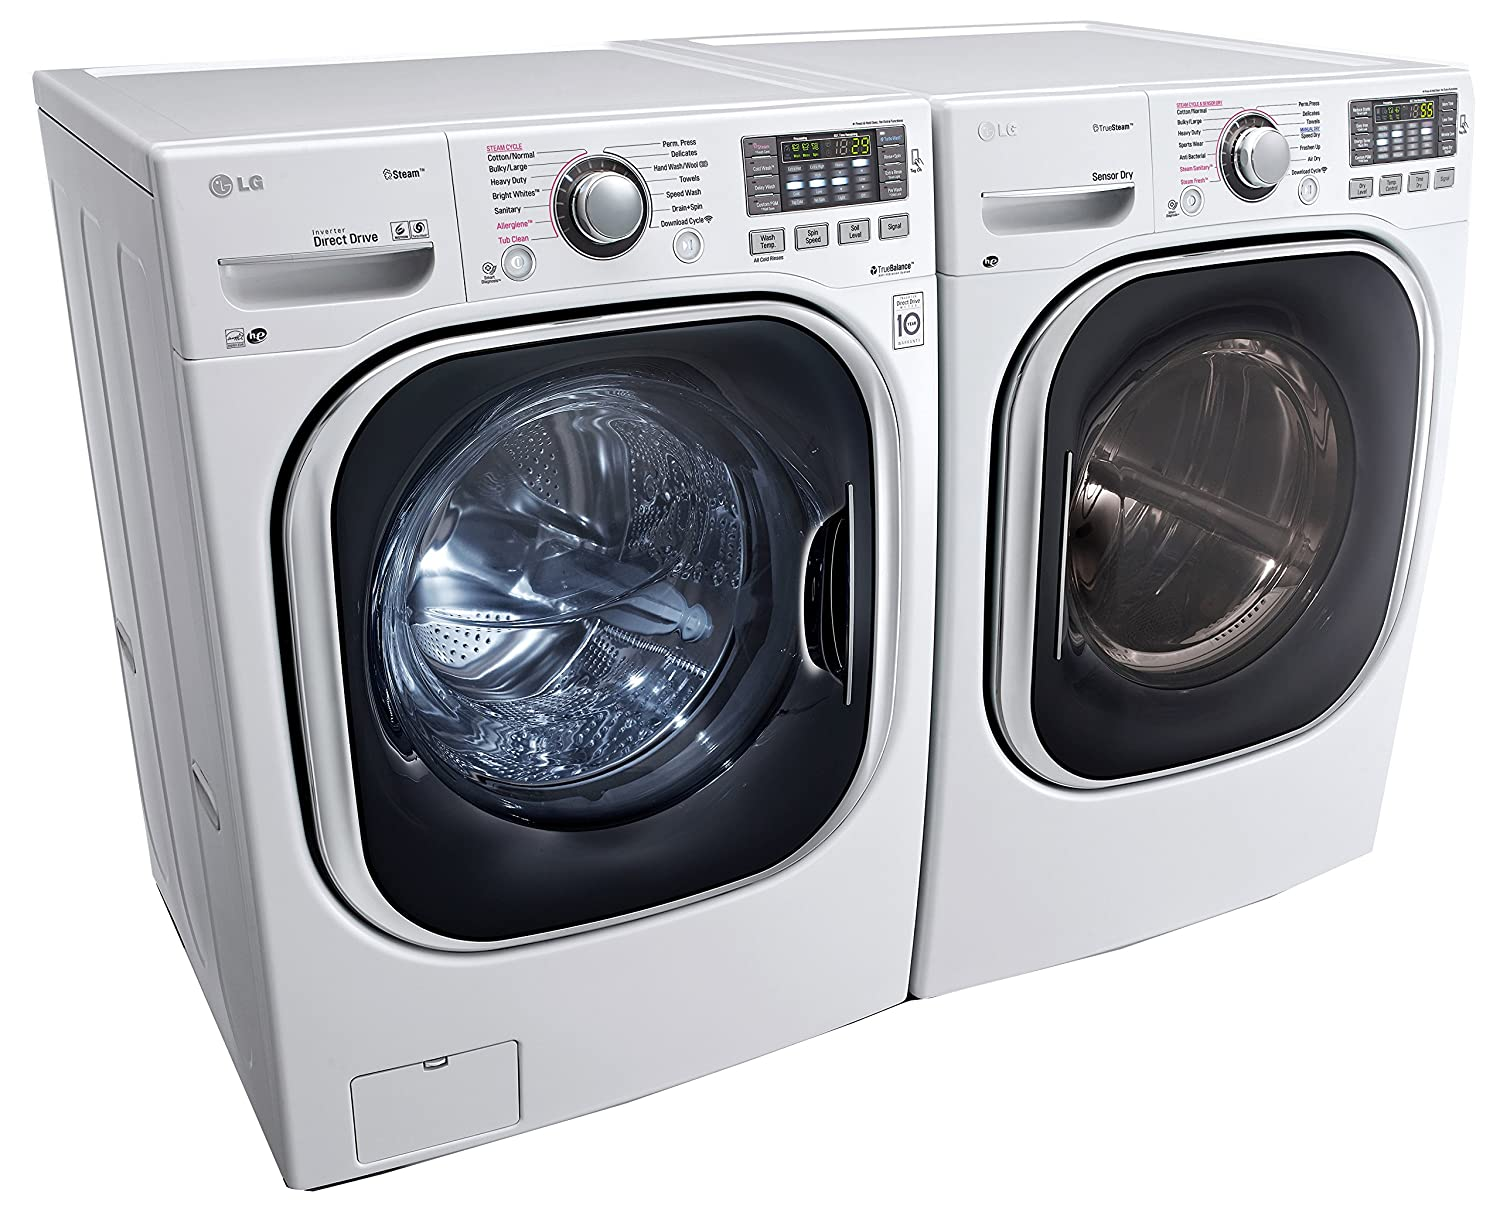 Sears lg washer and dryer - Hot New Releases